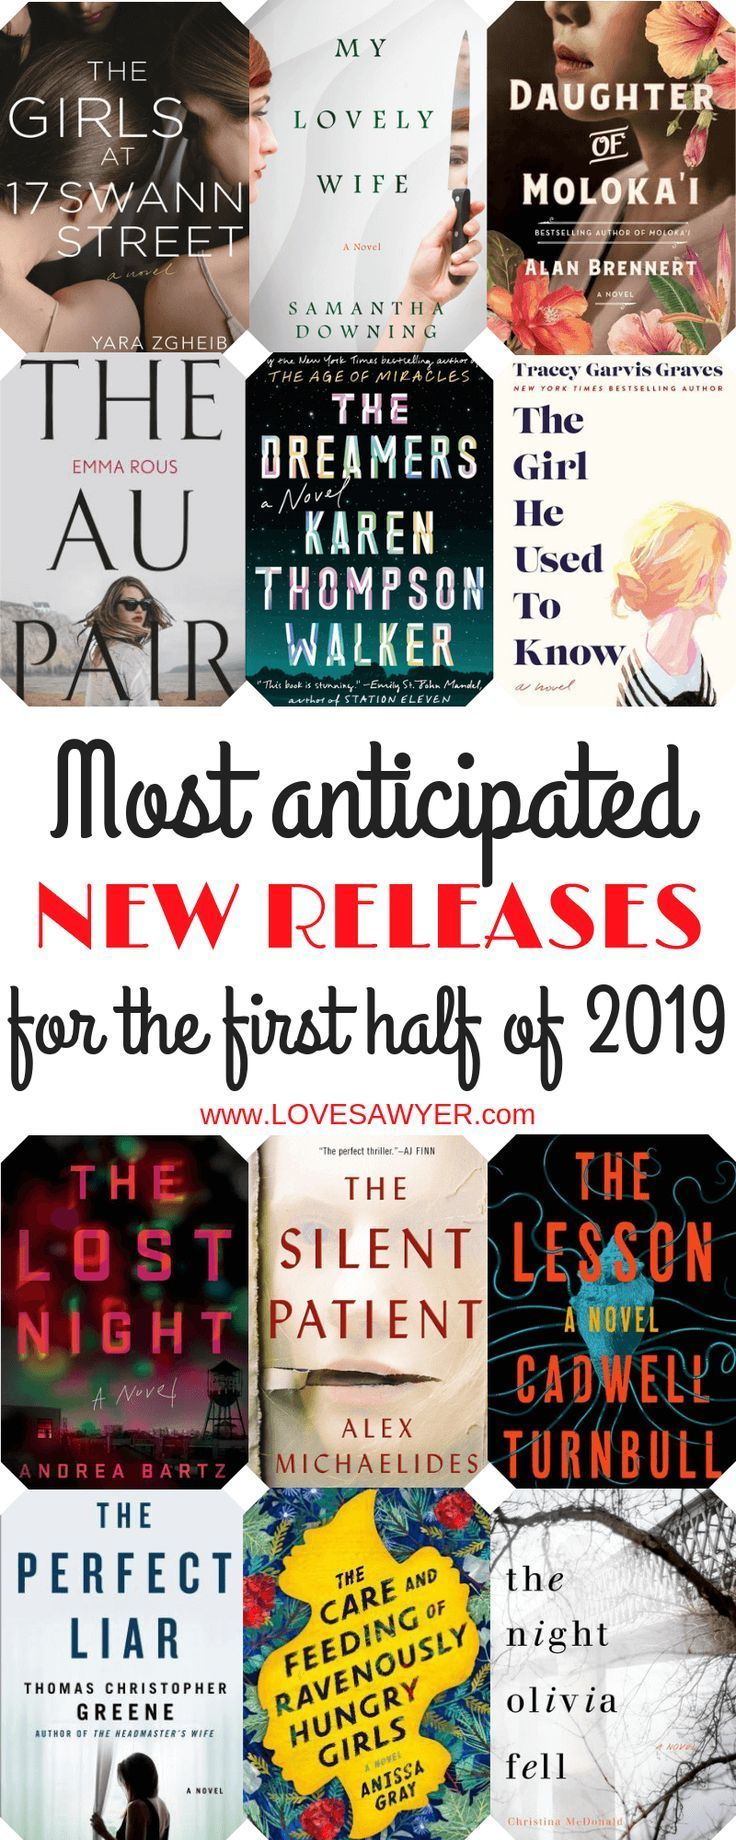 Most Anticipated New Releases of 2019 #bookstoread